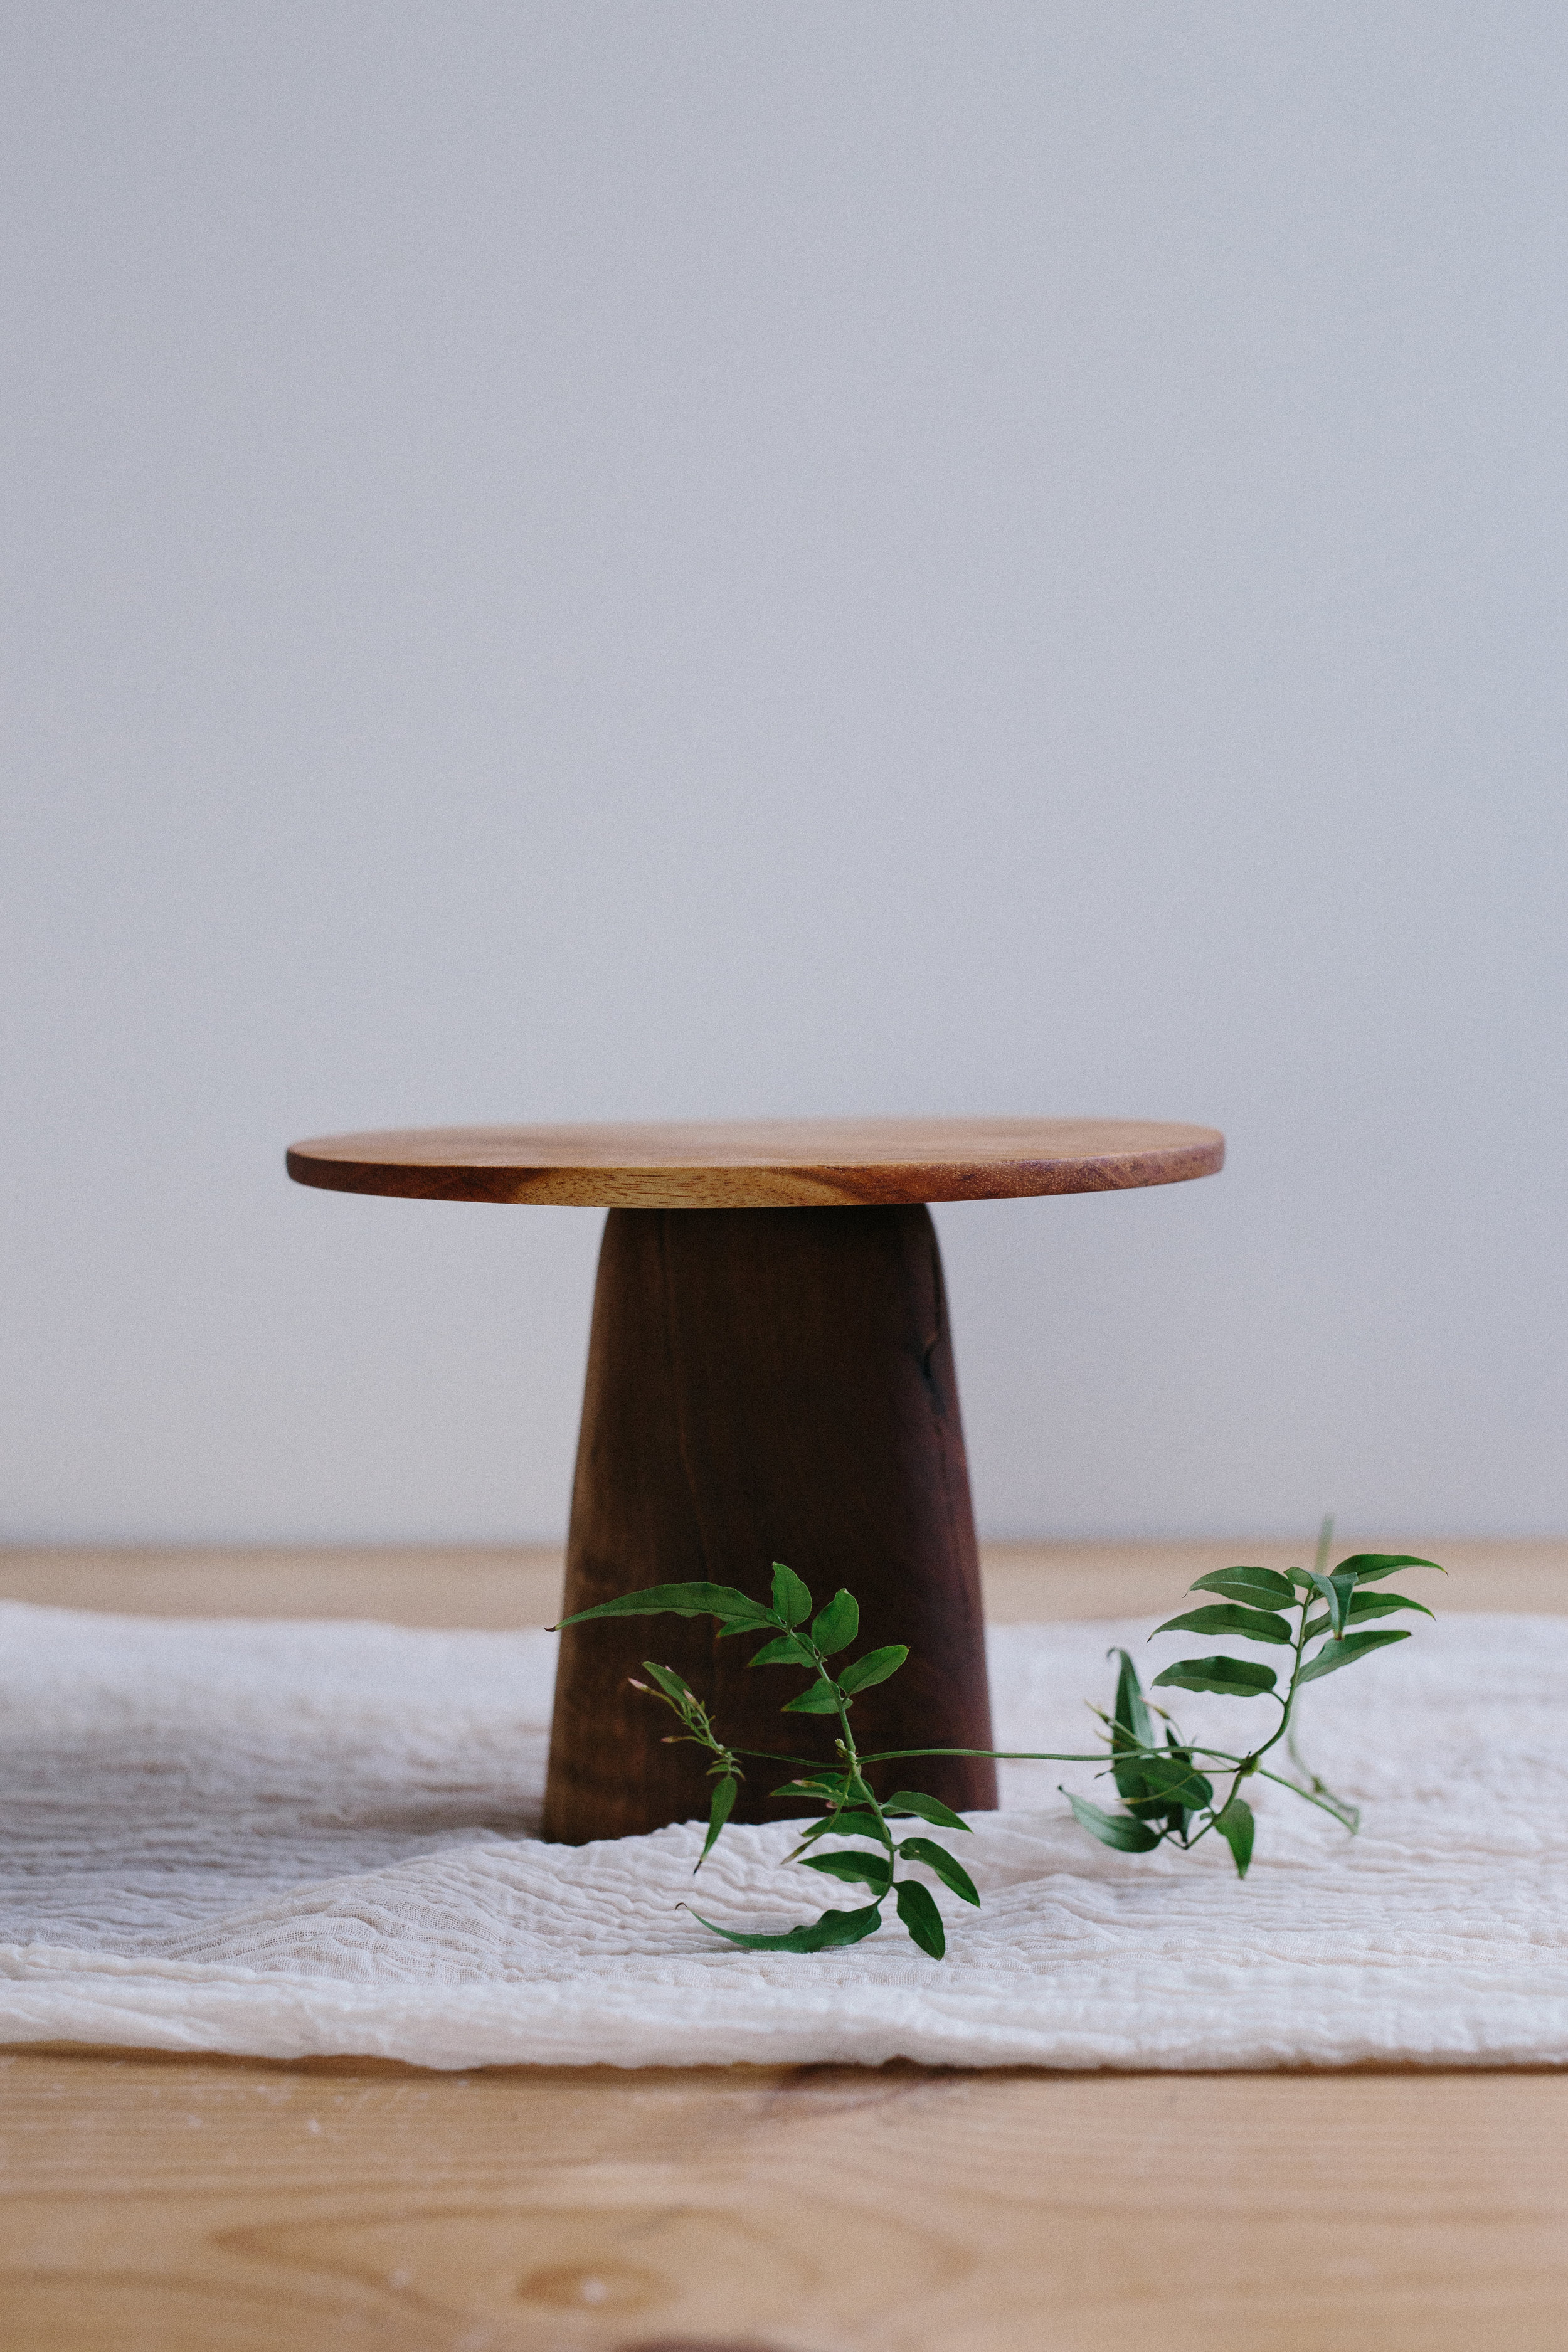 WOODEN MODERN STYLE CAKE STAND // $15